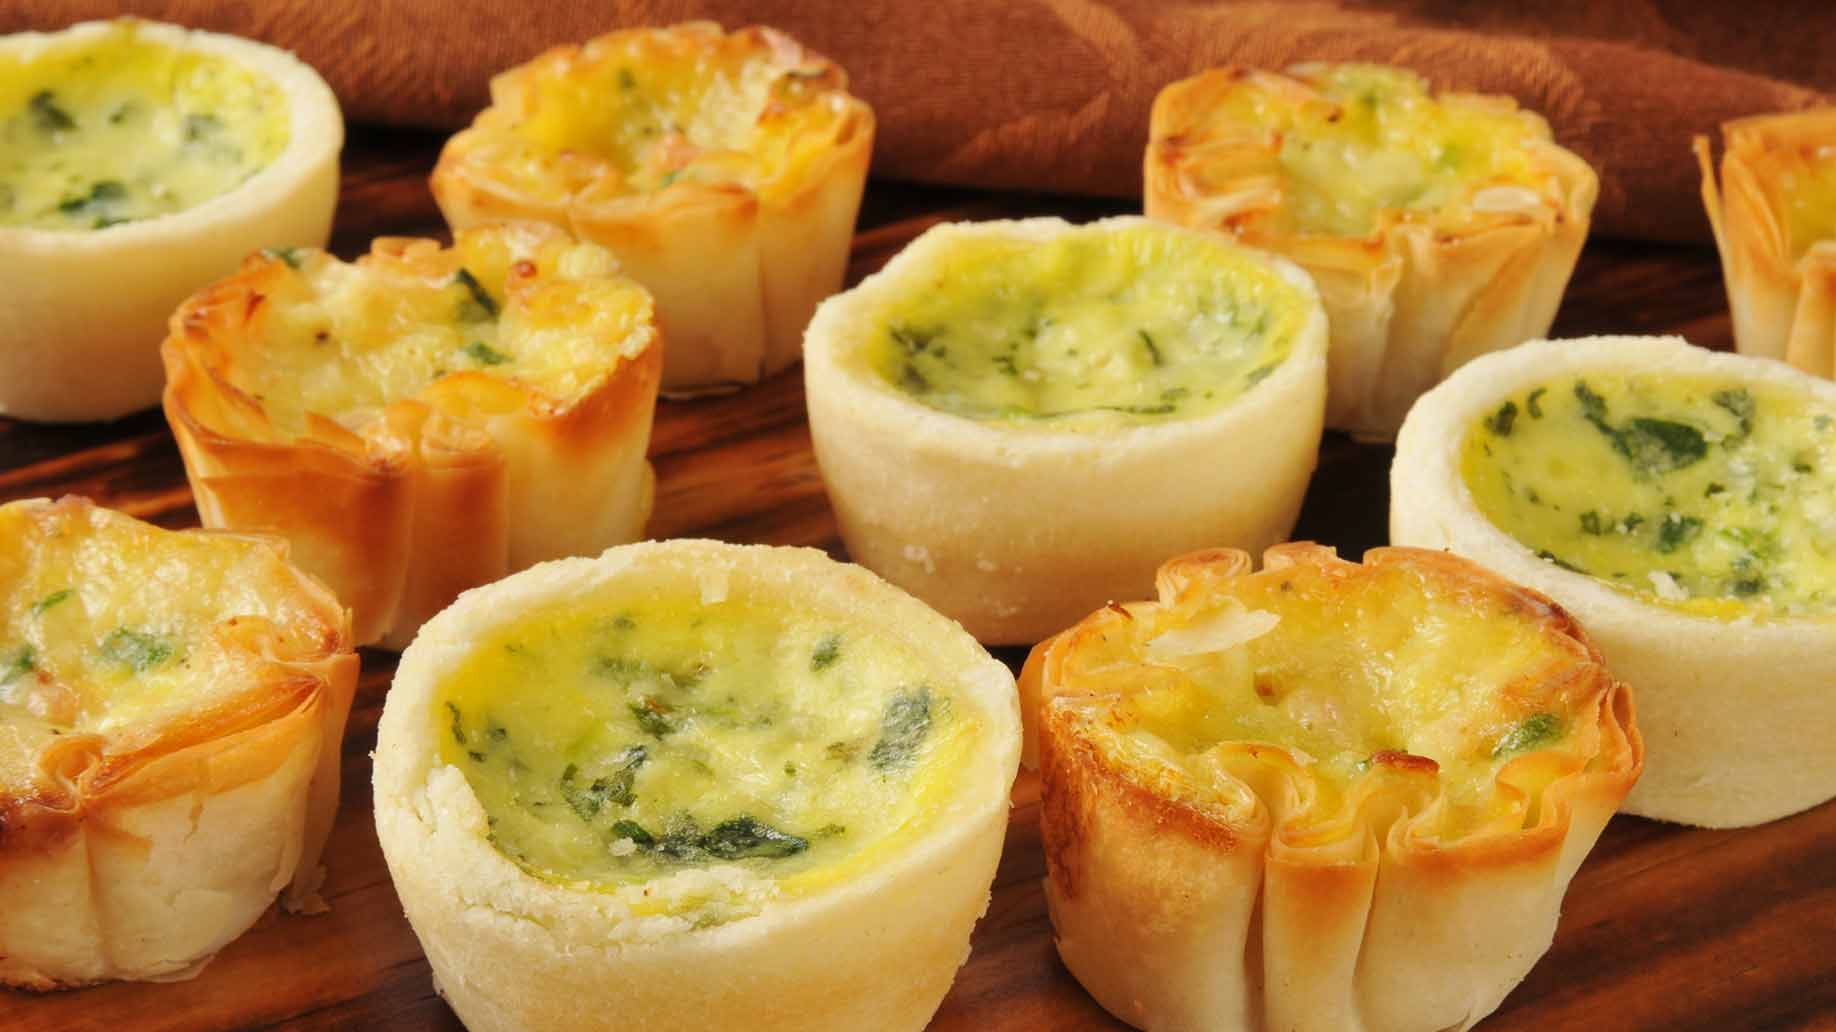 mini quiches eggs zucchini carrots cheese healthy snack ideas